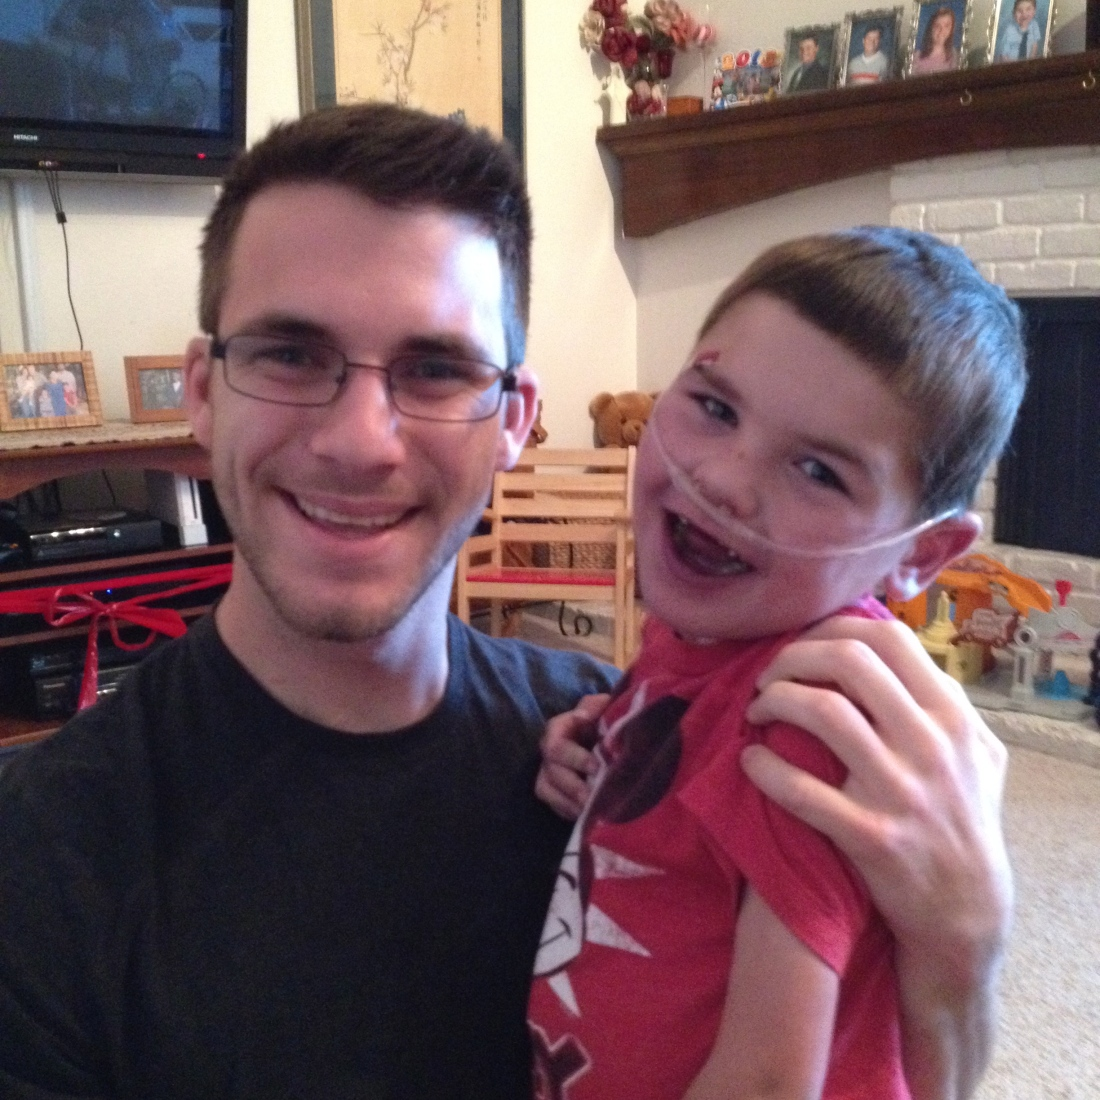 A visit with cousin Josh from Alabama helped kick off the official start of spring with lots of laughs and tackles!